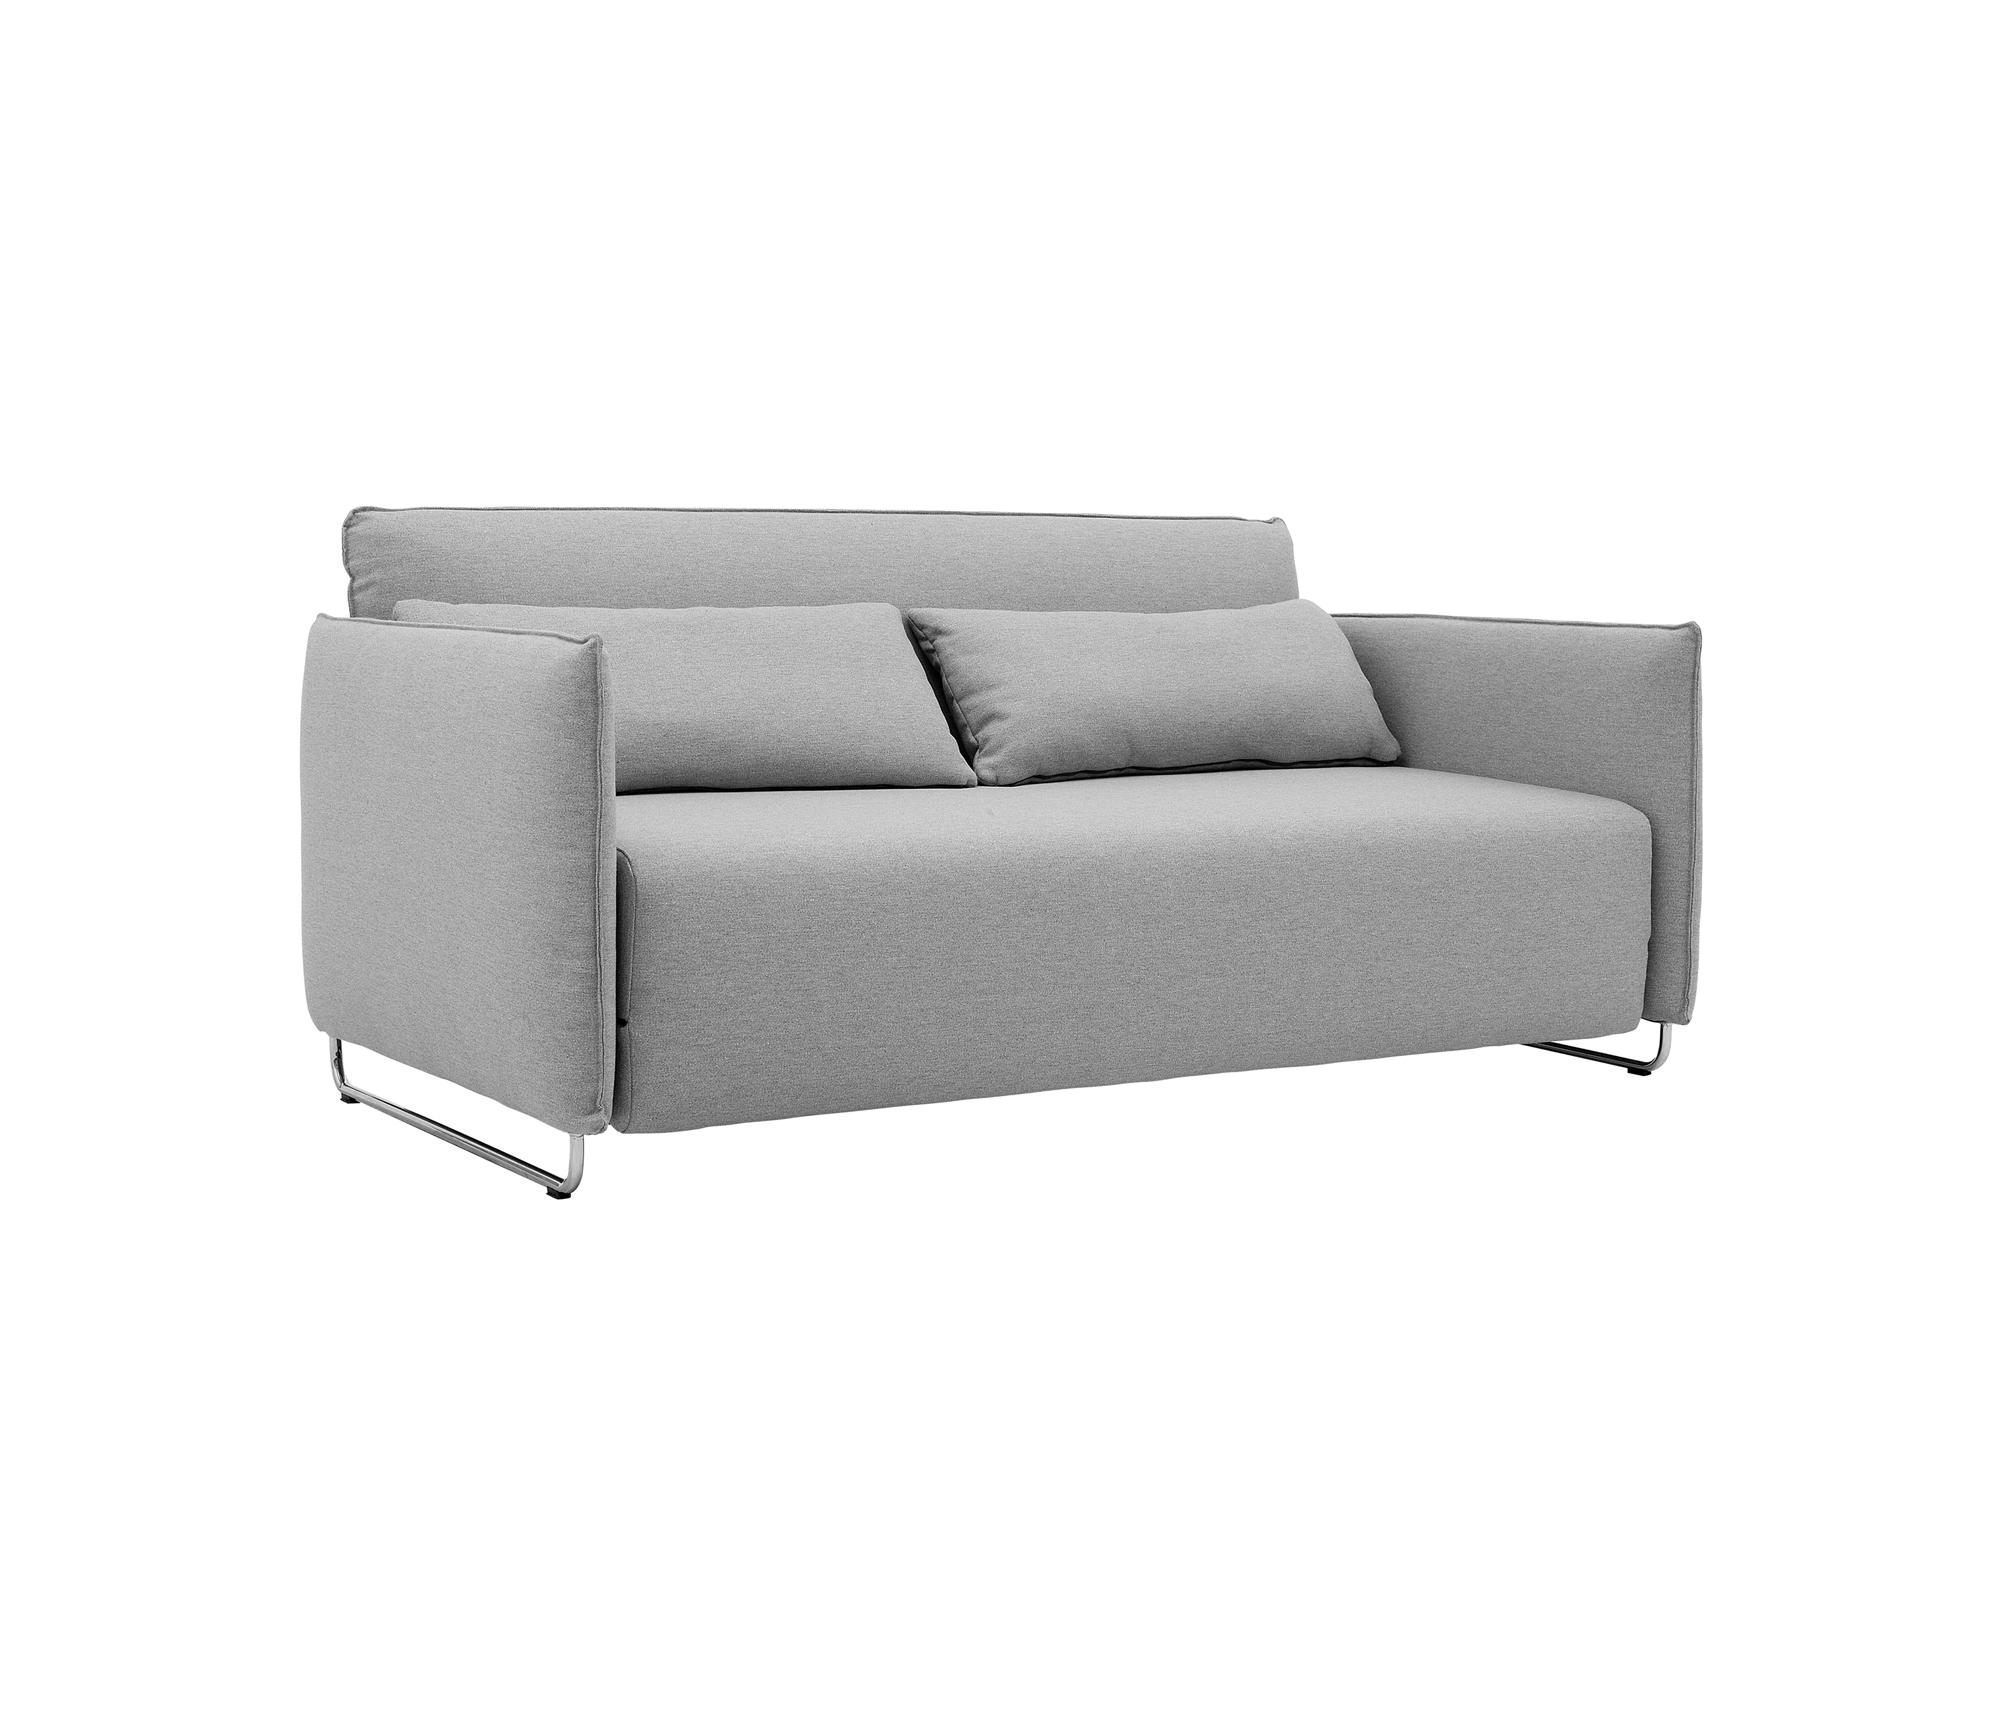 Cord Couch Cord Couch Fabulous Cord Sofa By Softline As With Cord